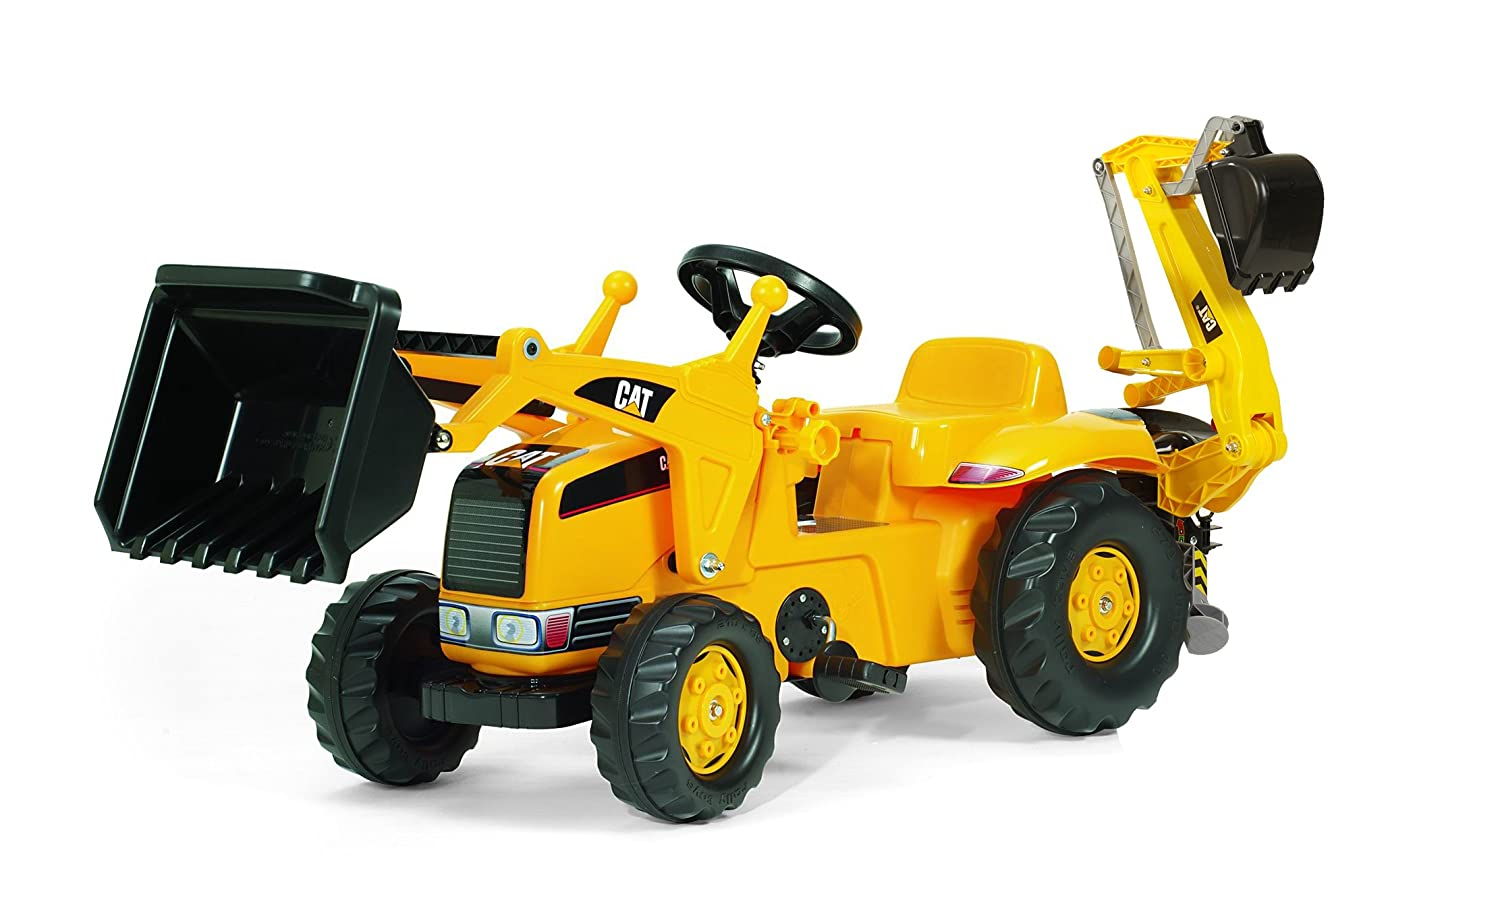 KETTLER CAT Backhoe Loader, Bikes, Scooters & Ride-Ons - Amazon Canada